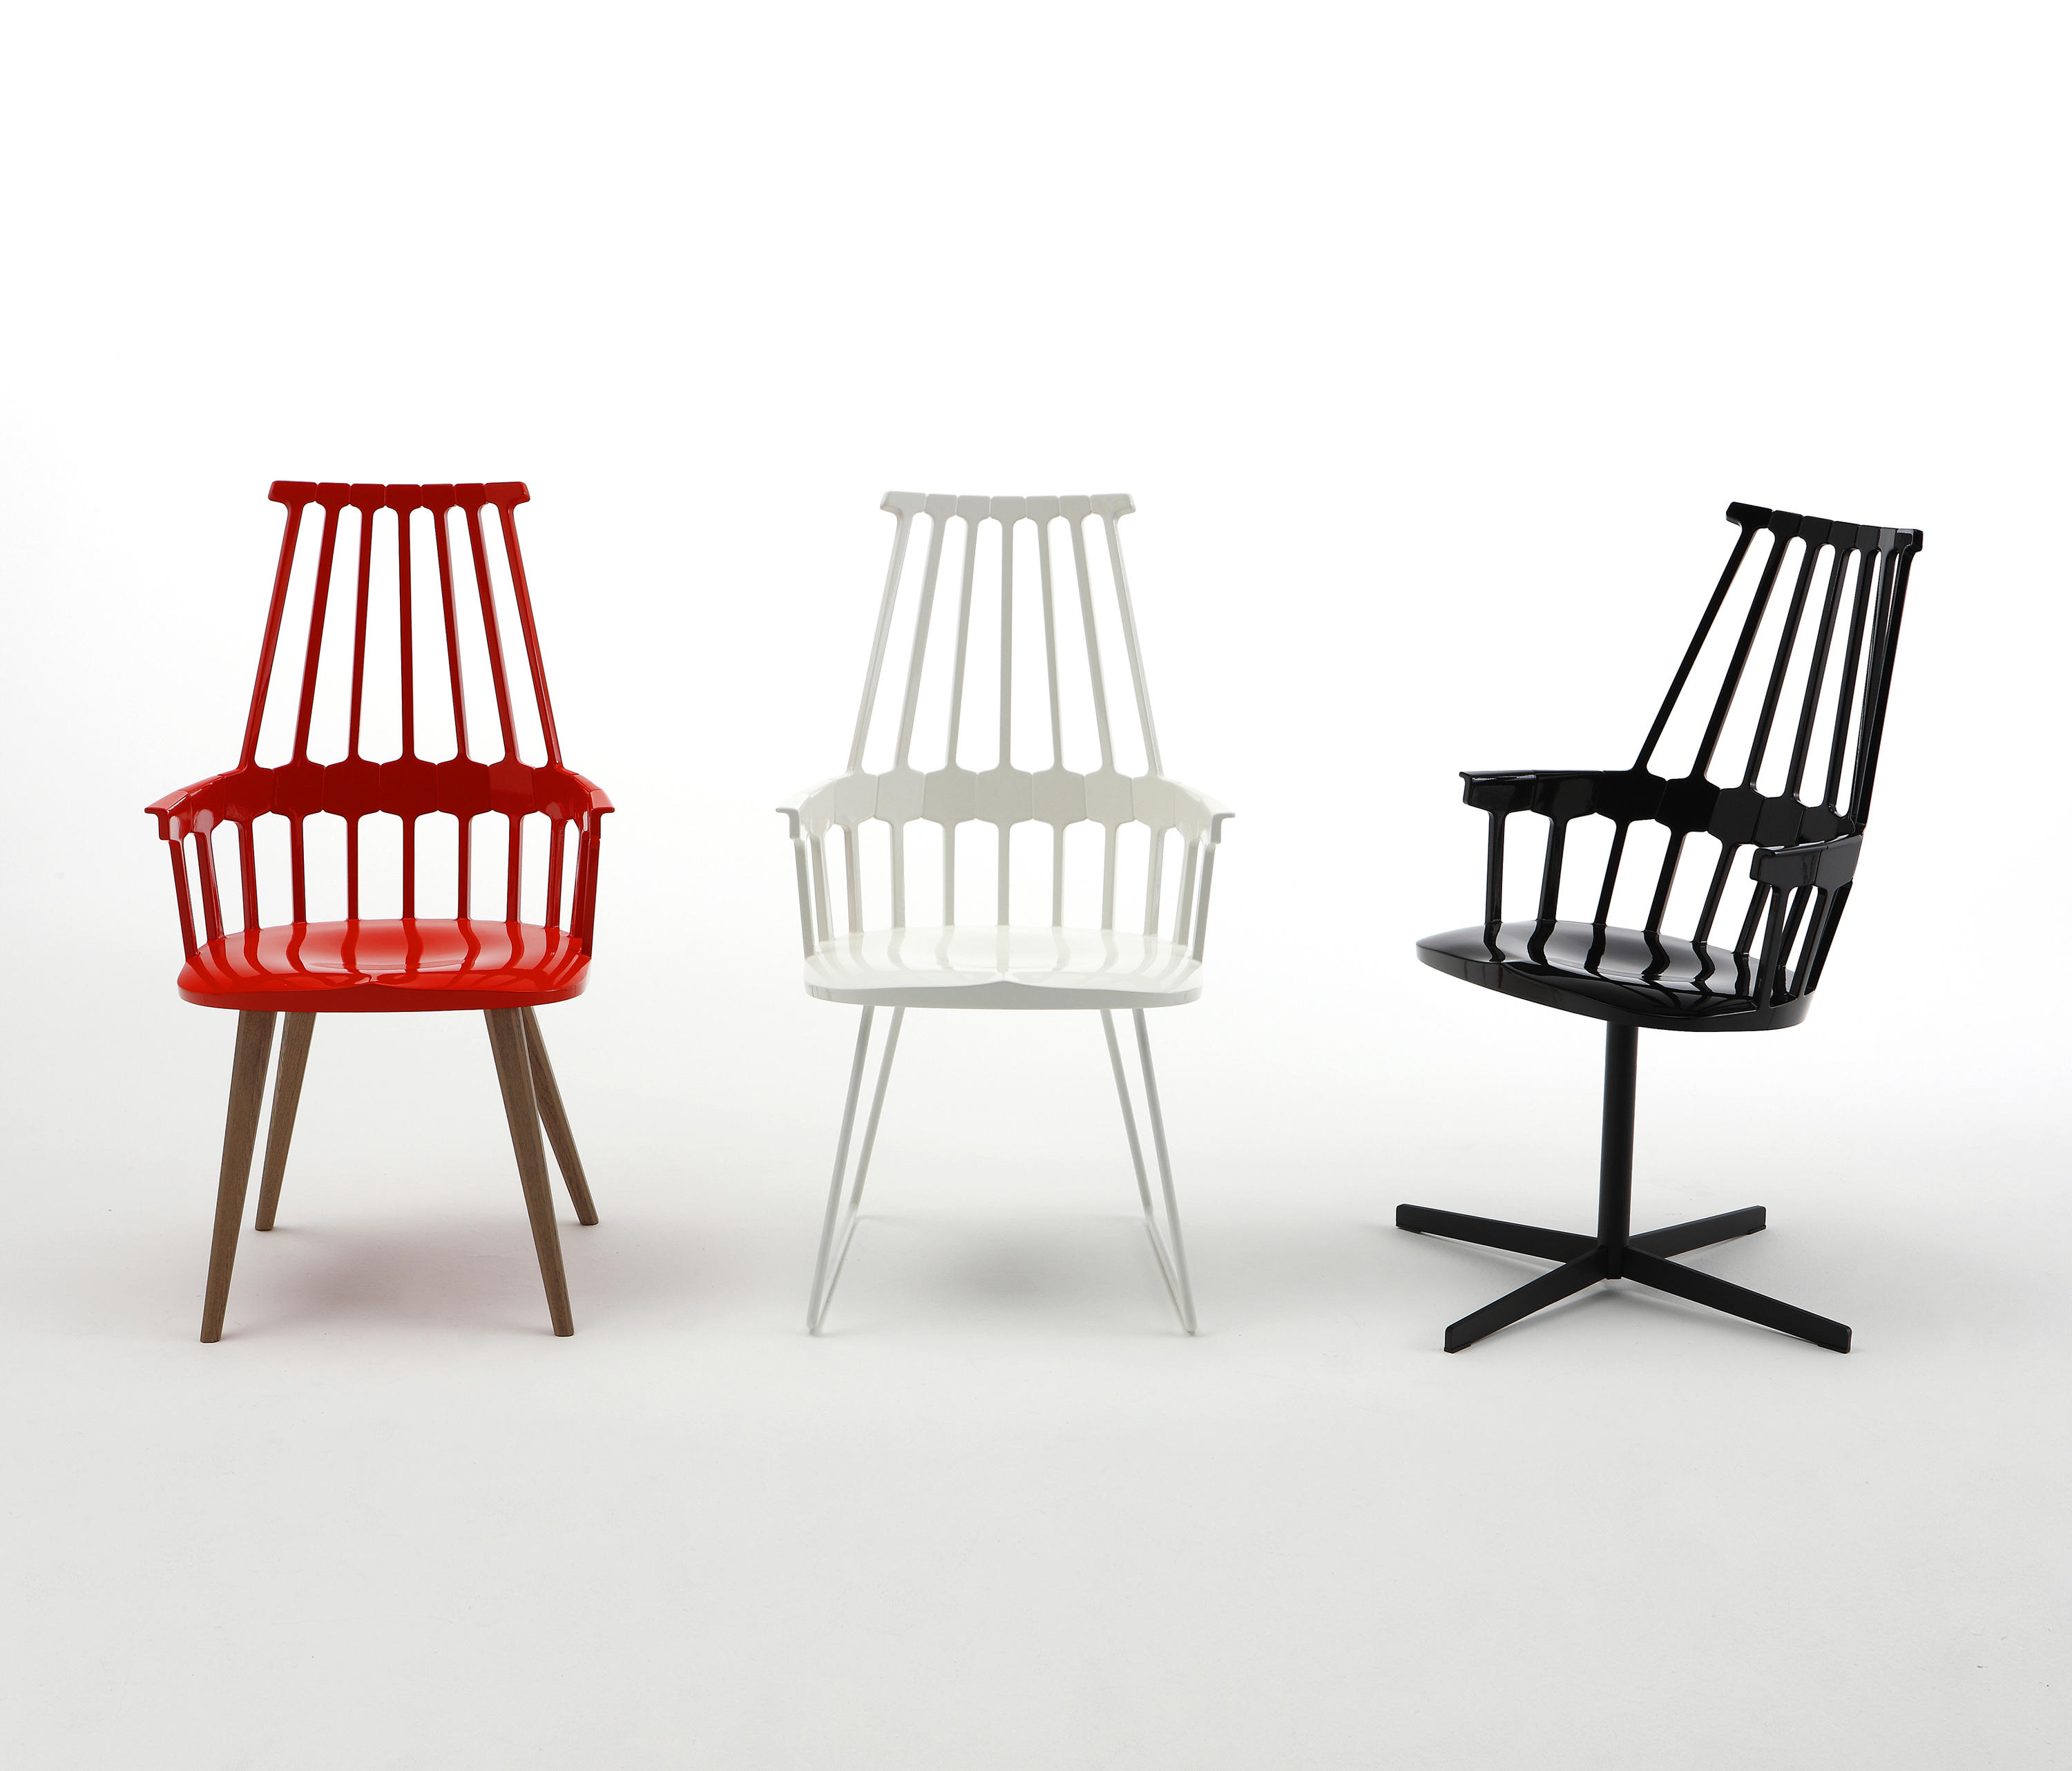 comback chair  chairs from kartell  architonic - ambient images